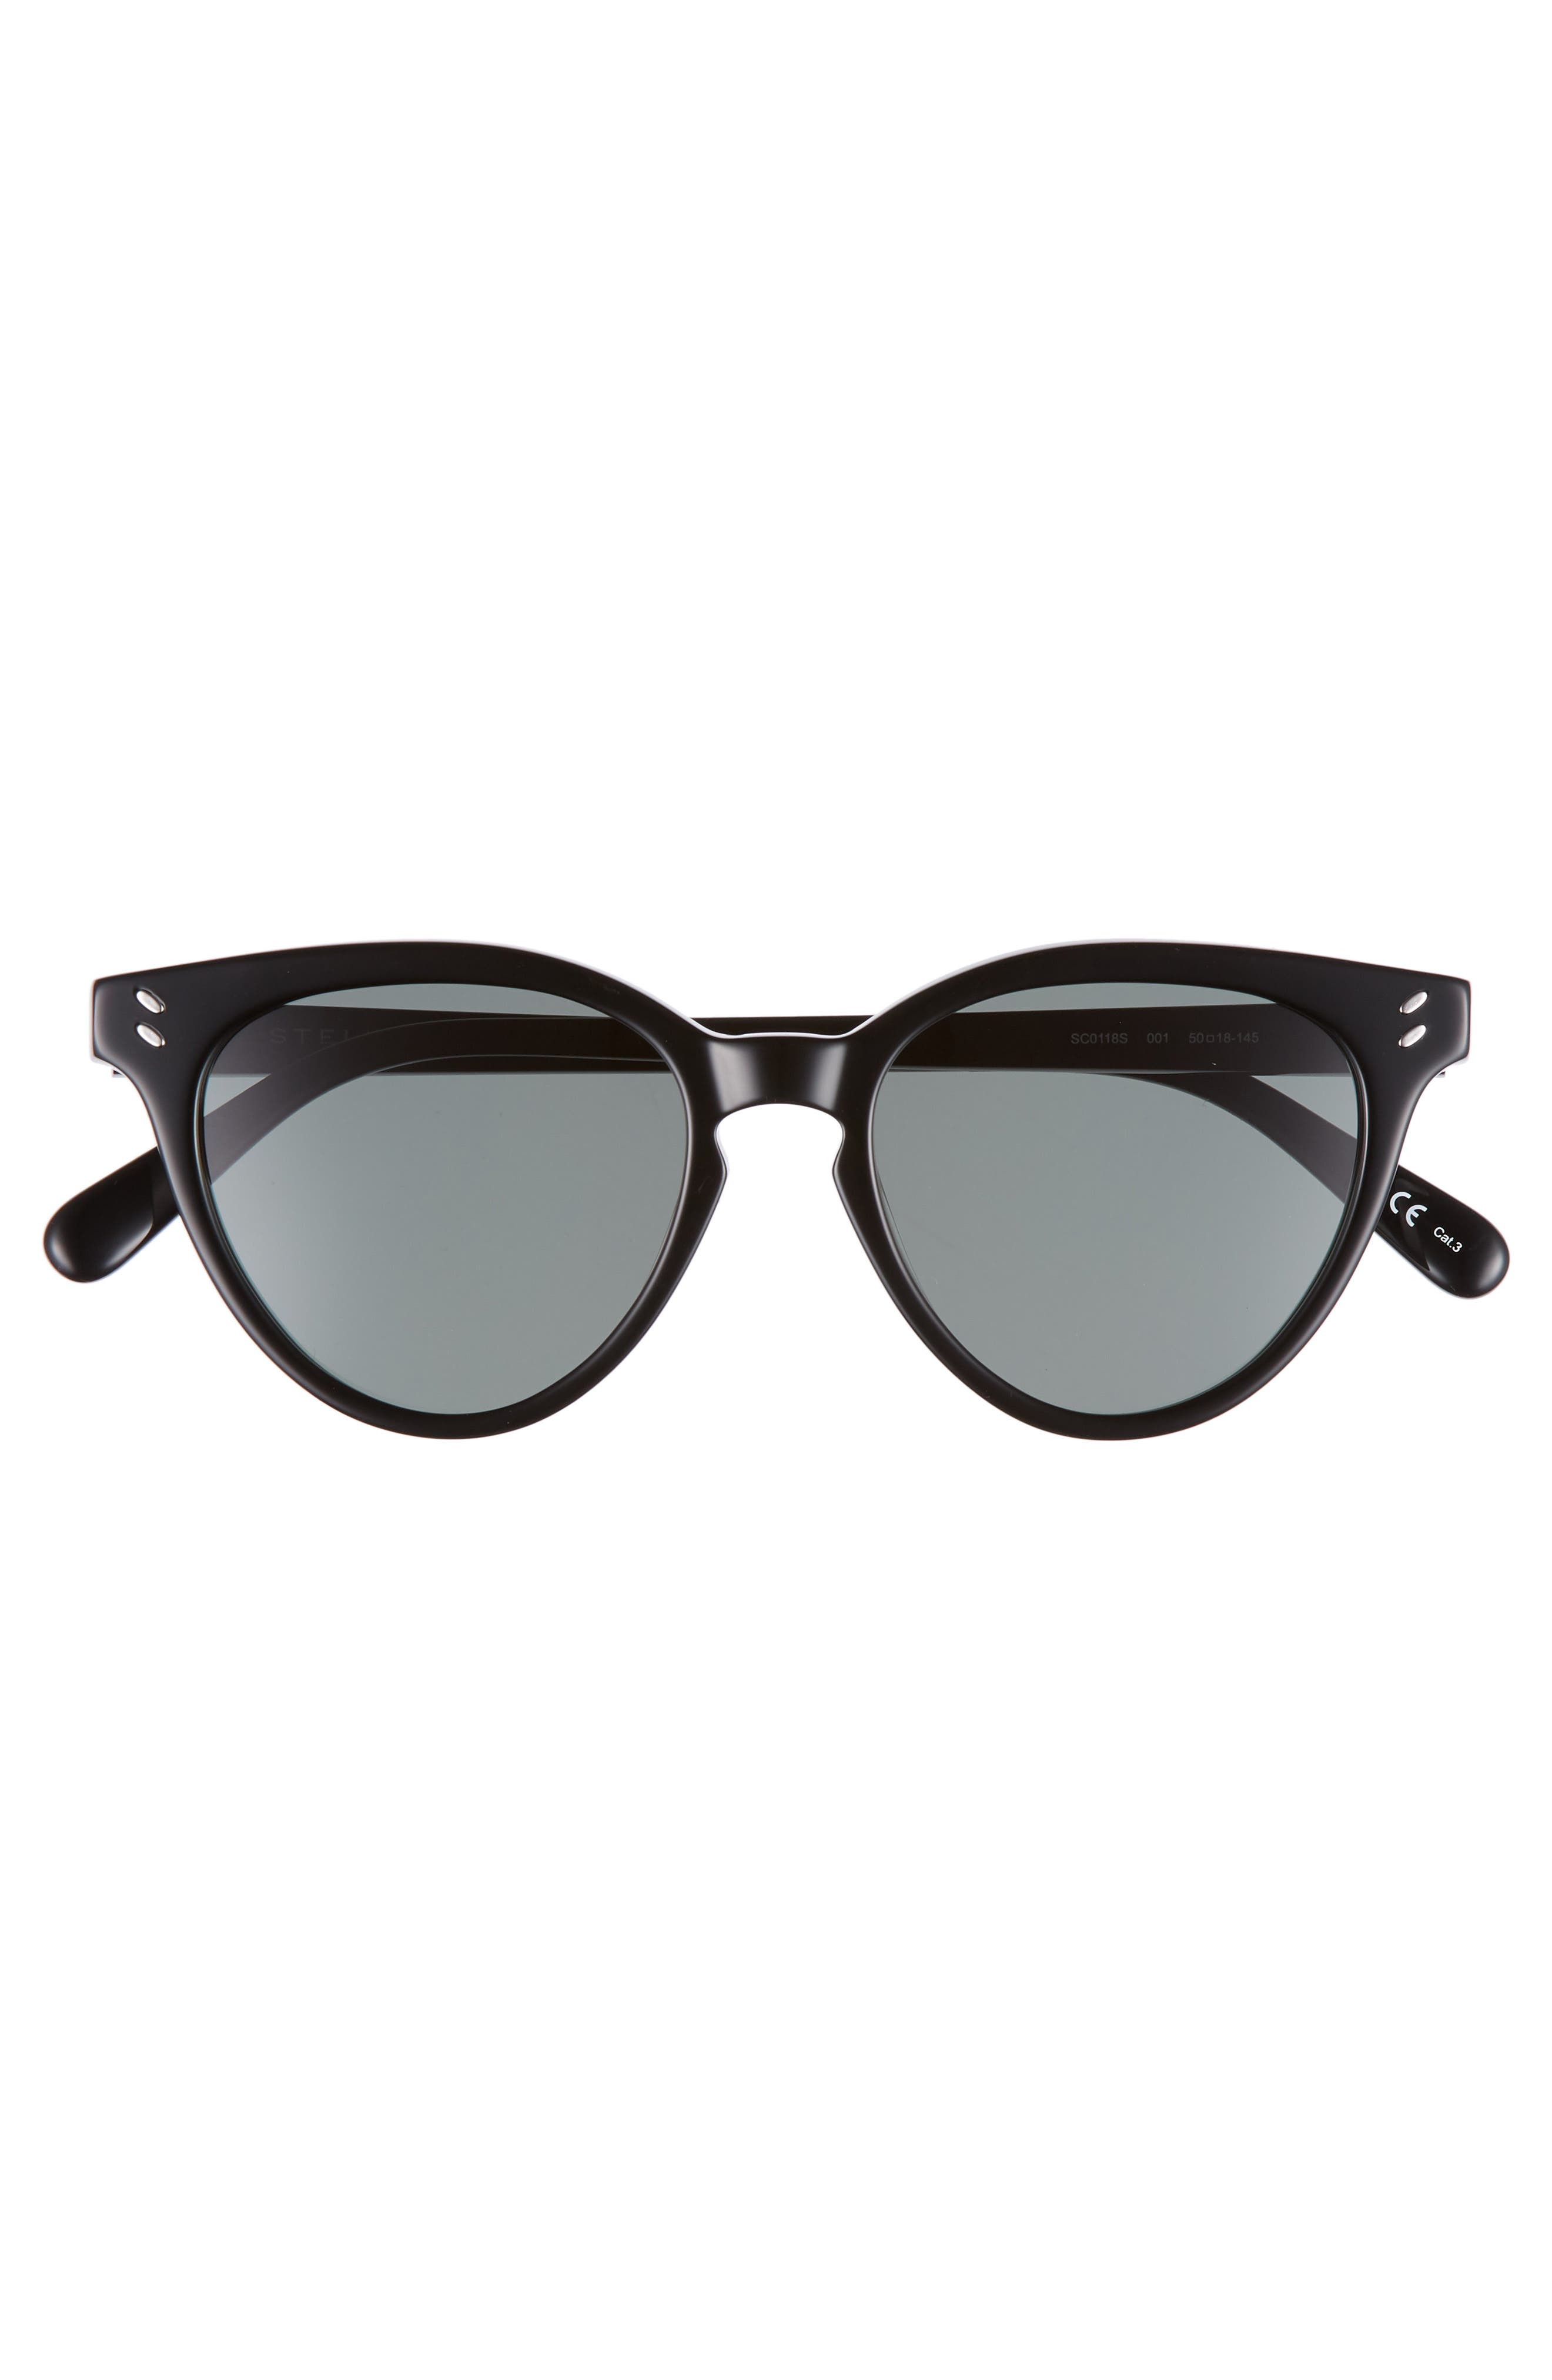 50mm Round Sunglasses,                             Alternate thumbnail 3, color,                             BLACK